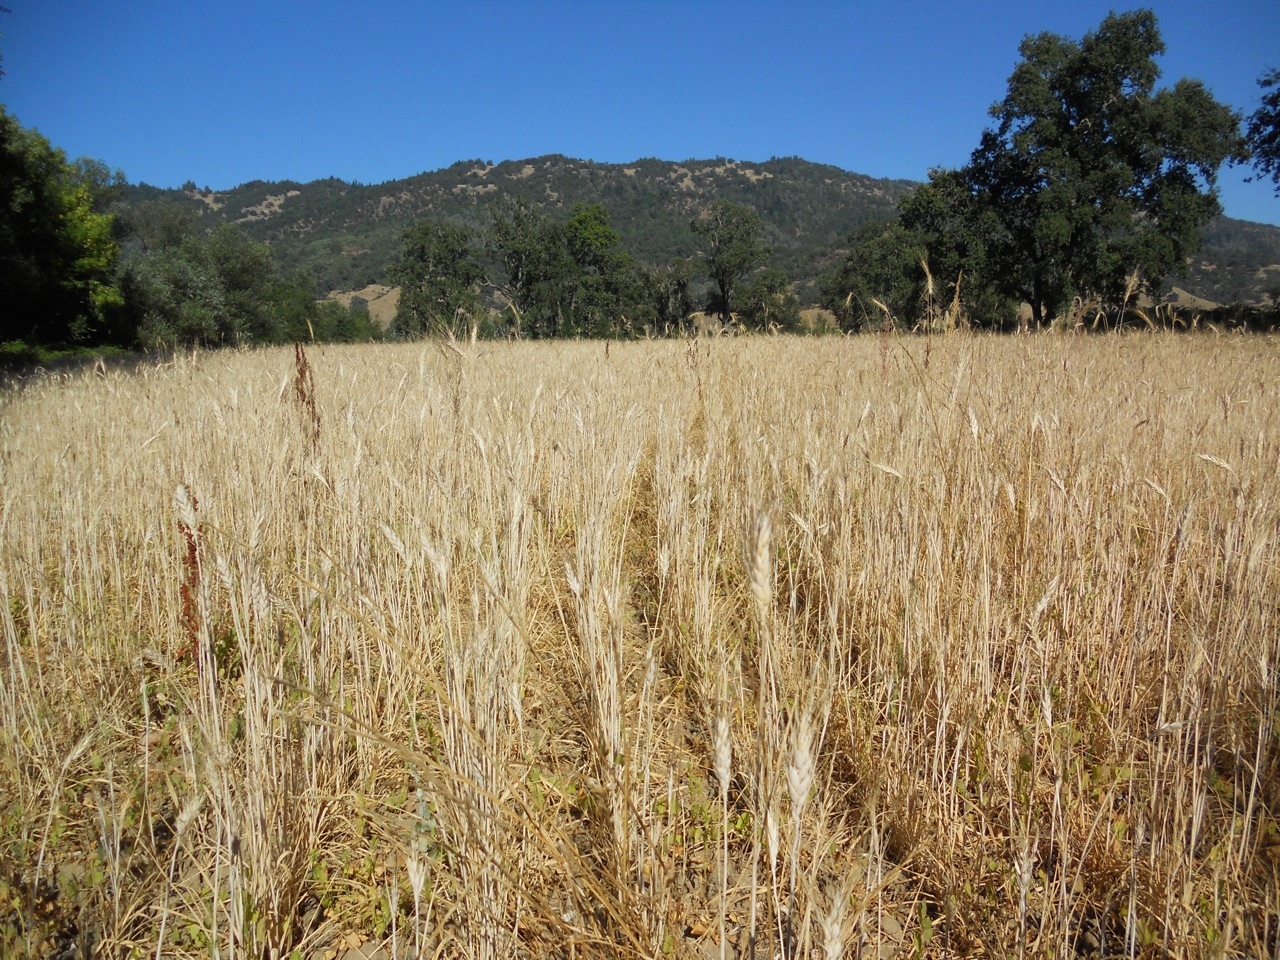 Small-scale durum wheat crop - photo by Mendocino organics